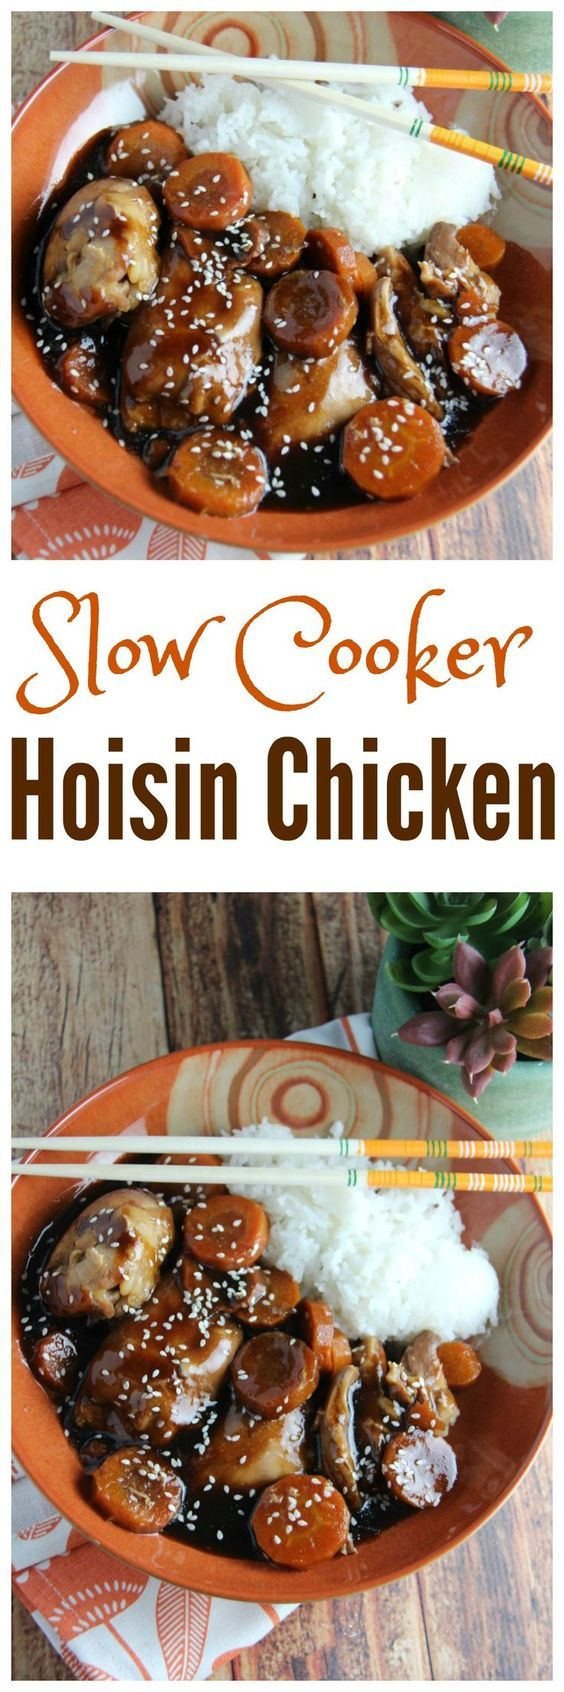 Slow Cooker Chicken with Hoisin Sauce - this easy and flavourful recipe  is better than take out and healthier too! Made with chicken thighs and a few simple ingredients perfect for weeknights.